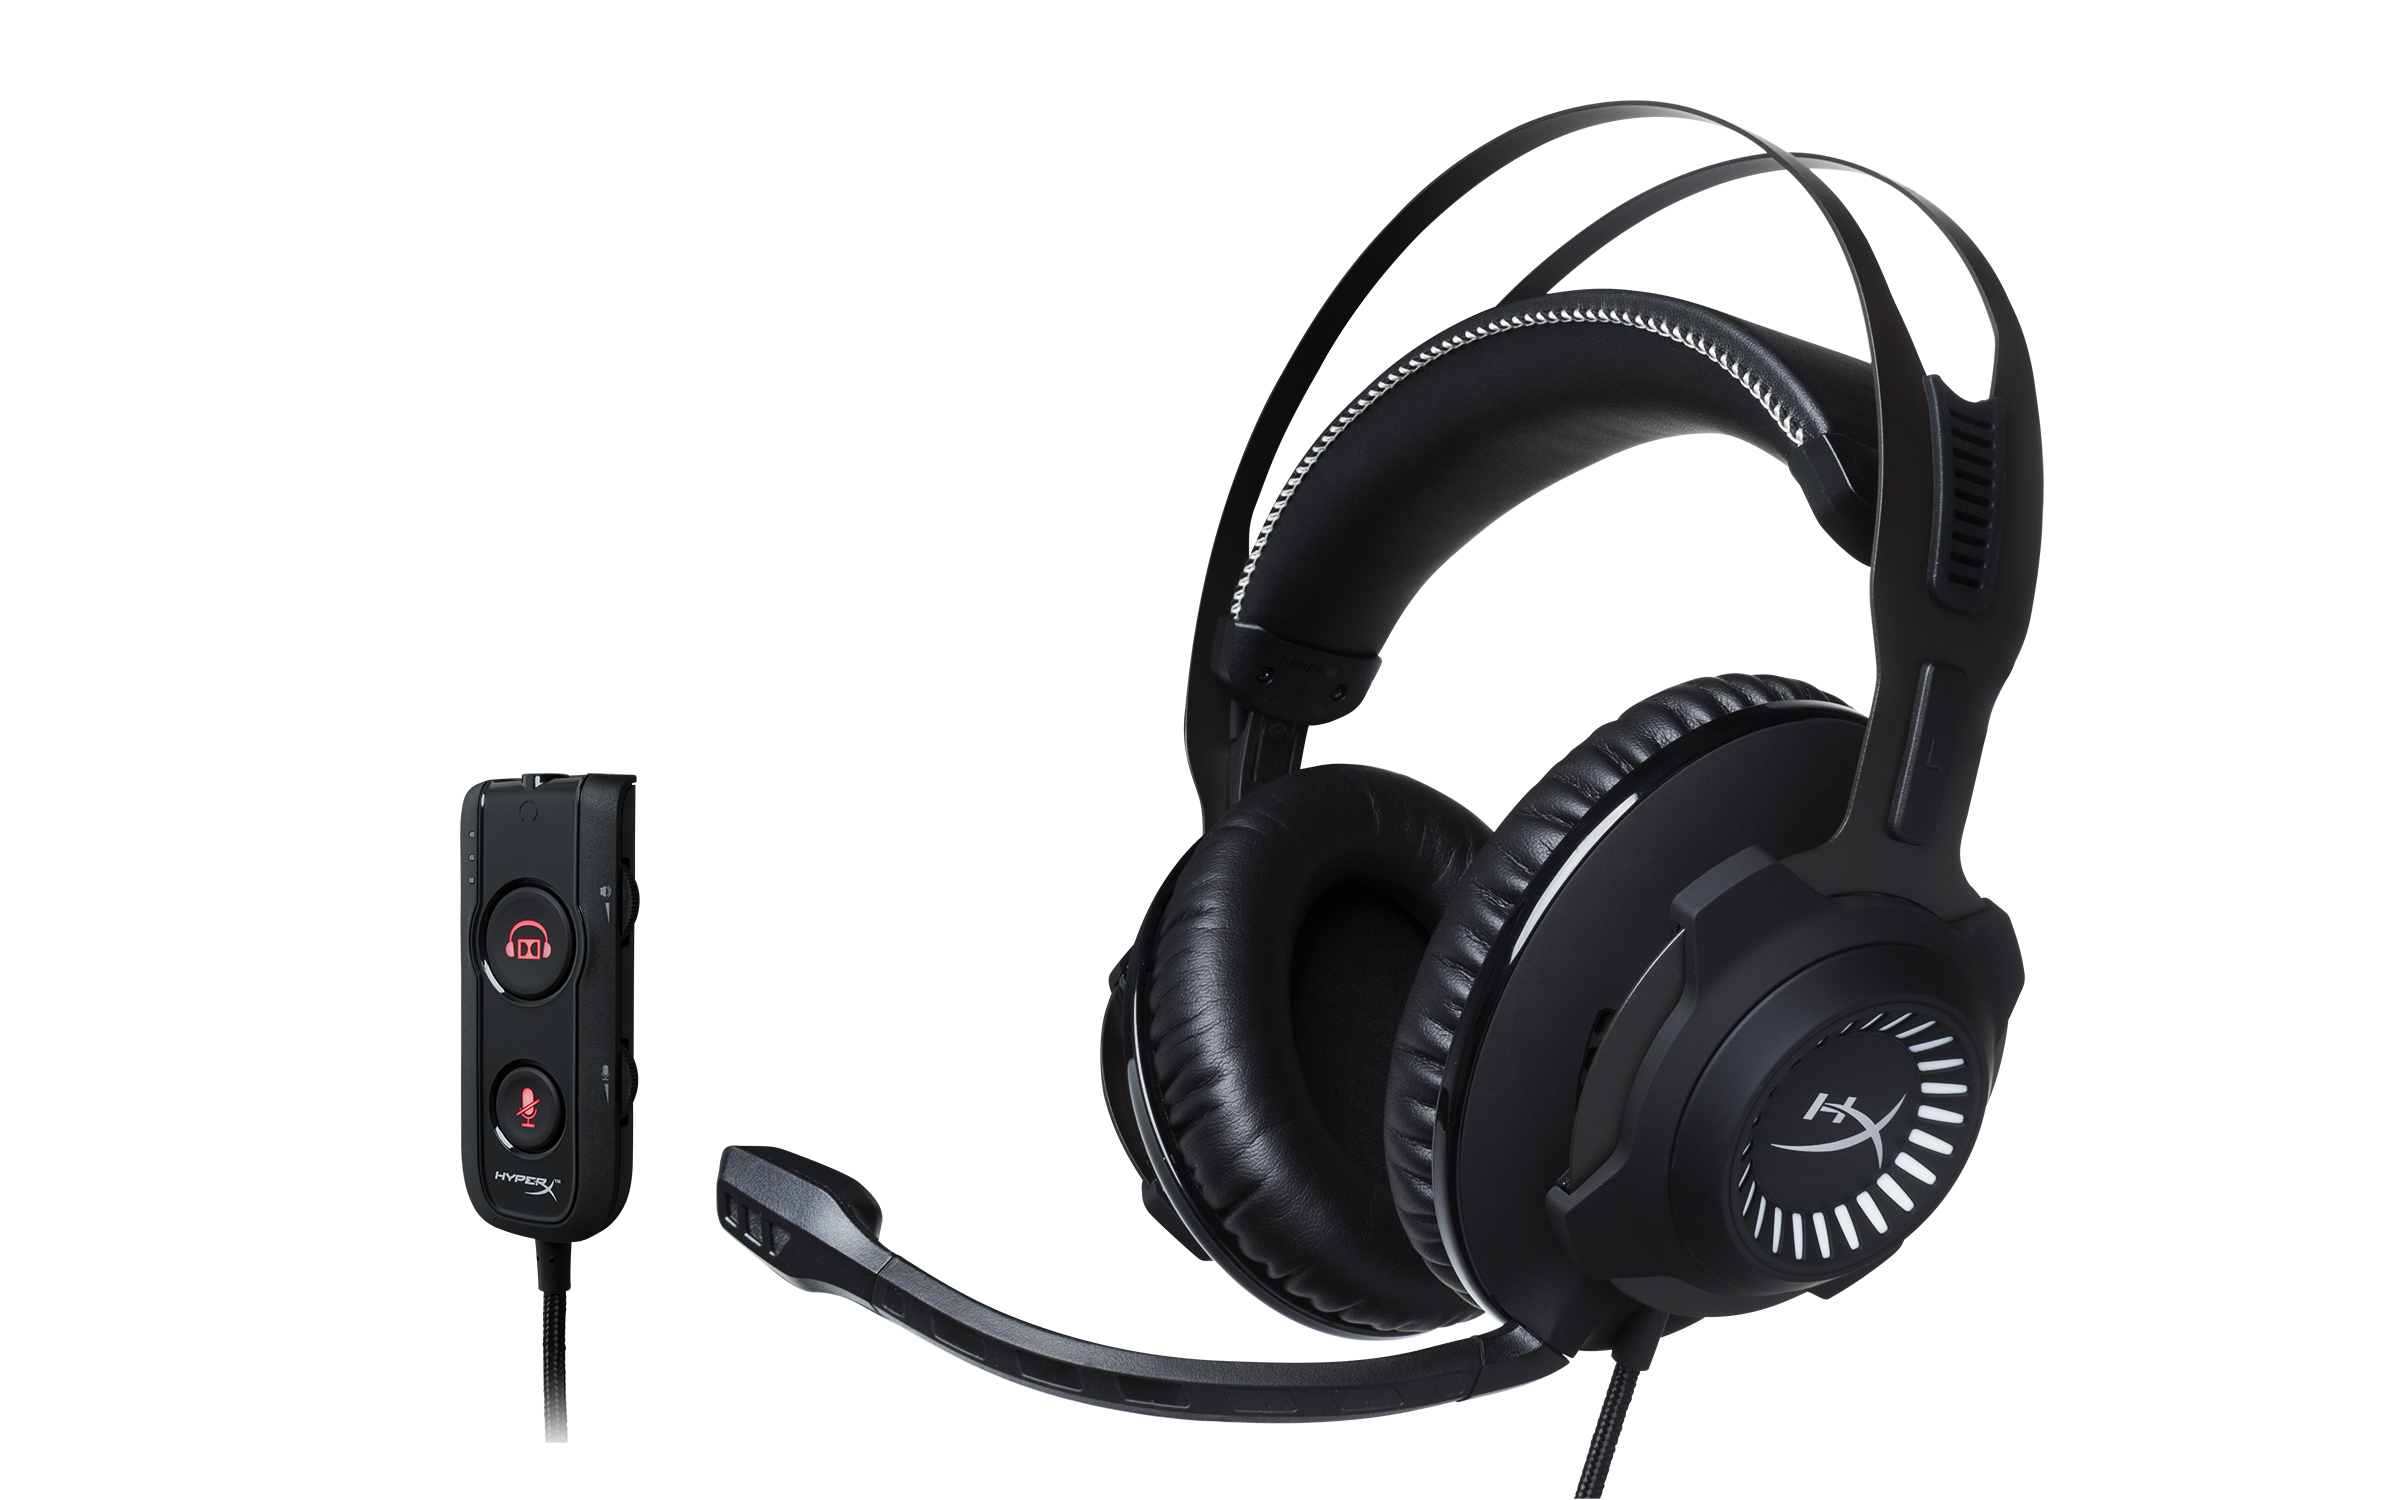 hyperx introduces first gaming headset with plug-and-play dolby surround  sound – the hyperx cloud revolver s | business wire